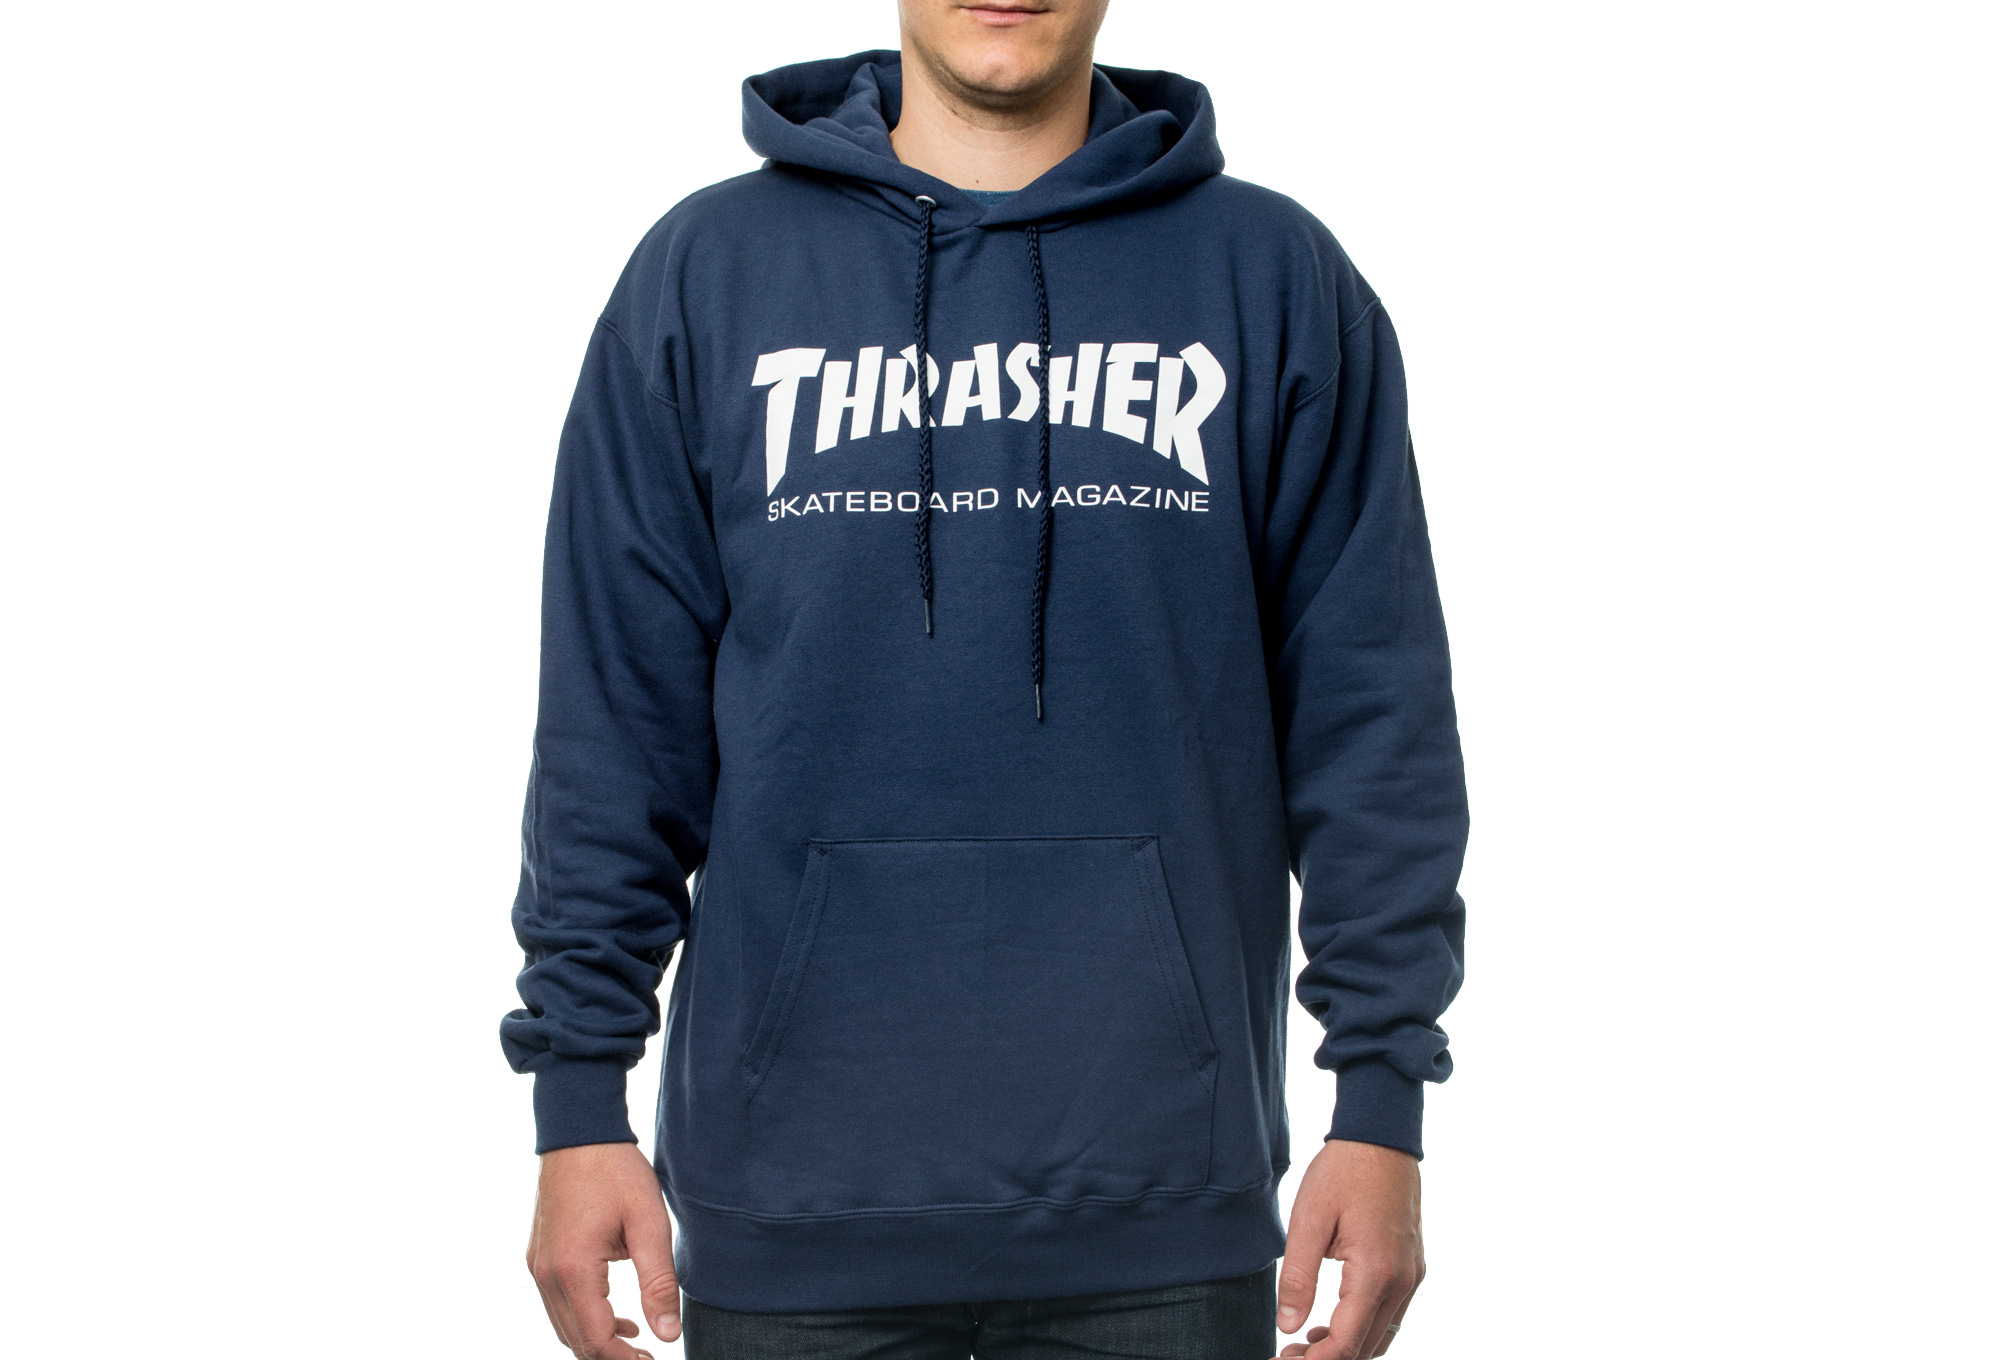 thrasher skate mag hoodie blue. Black Bedroom Furniture Sets. Home Design Ideas